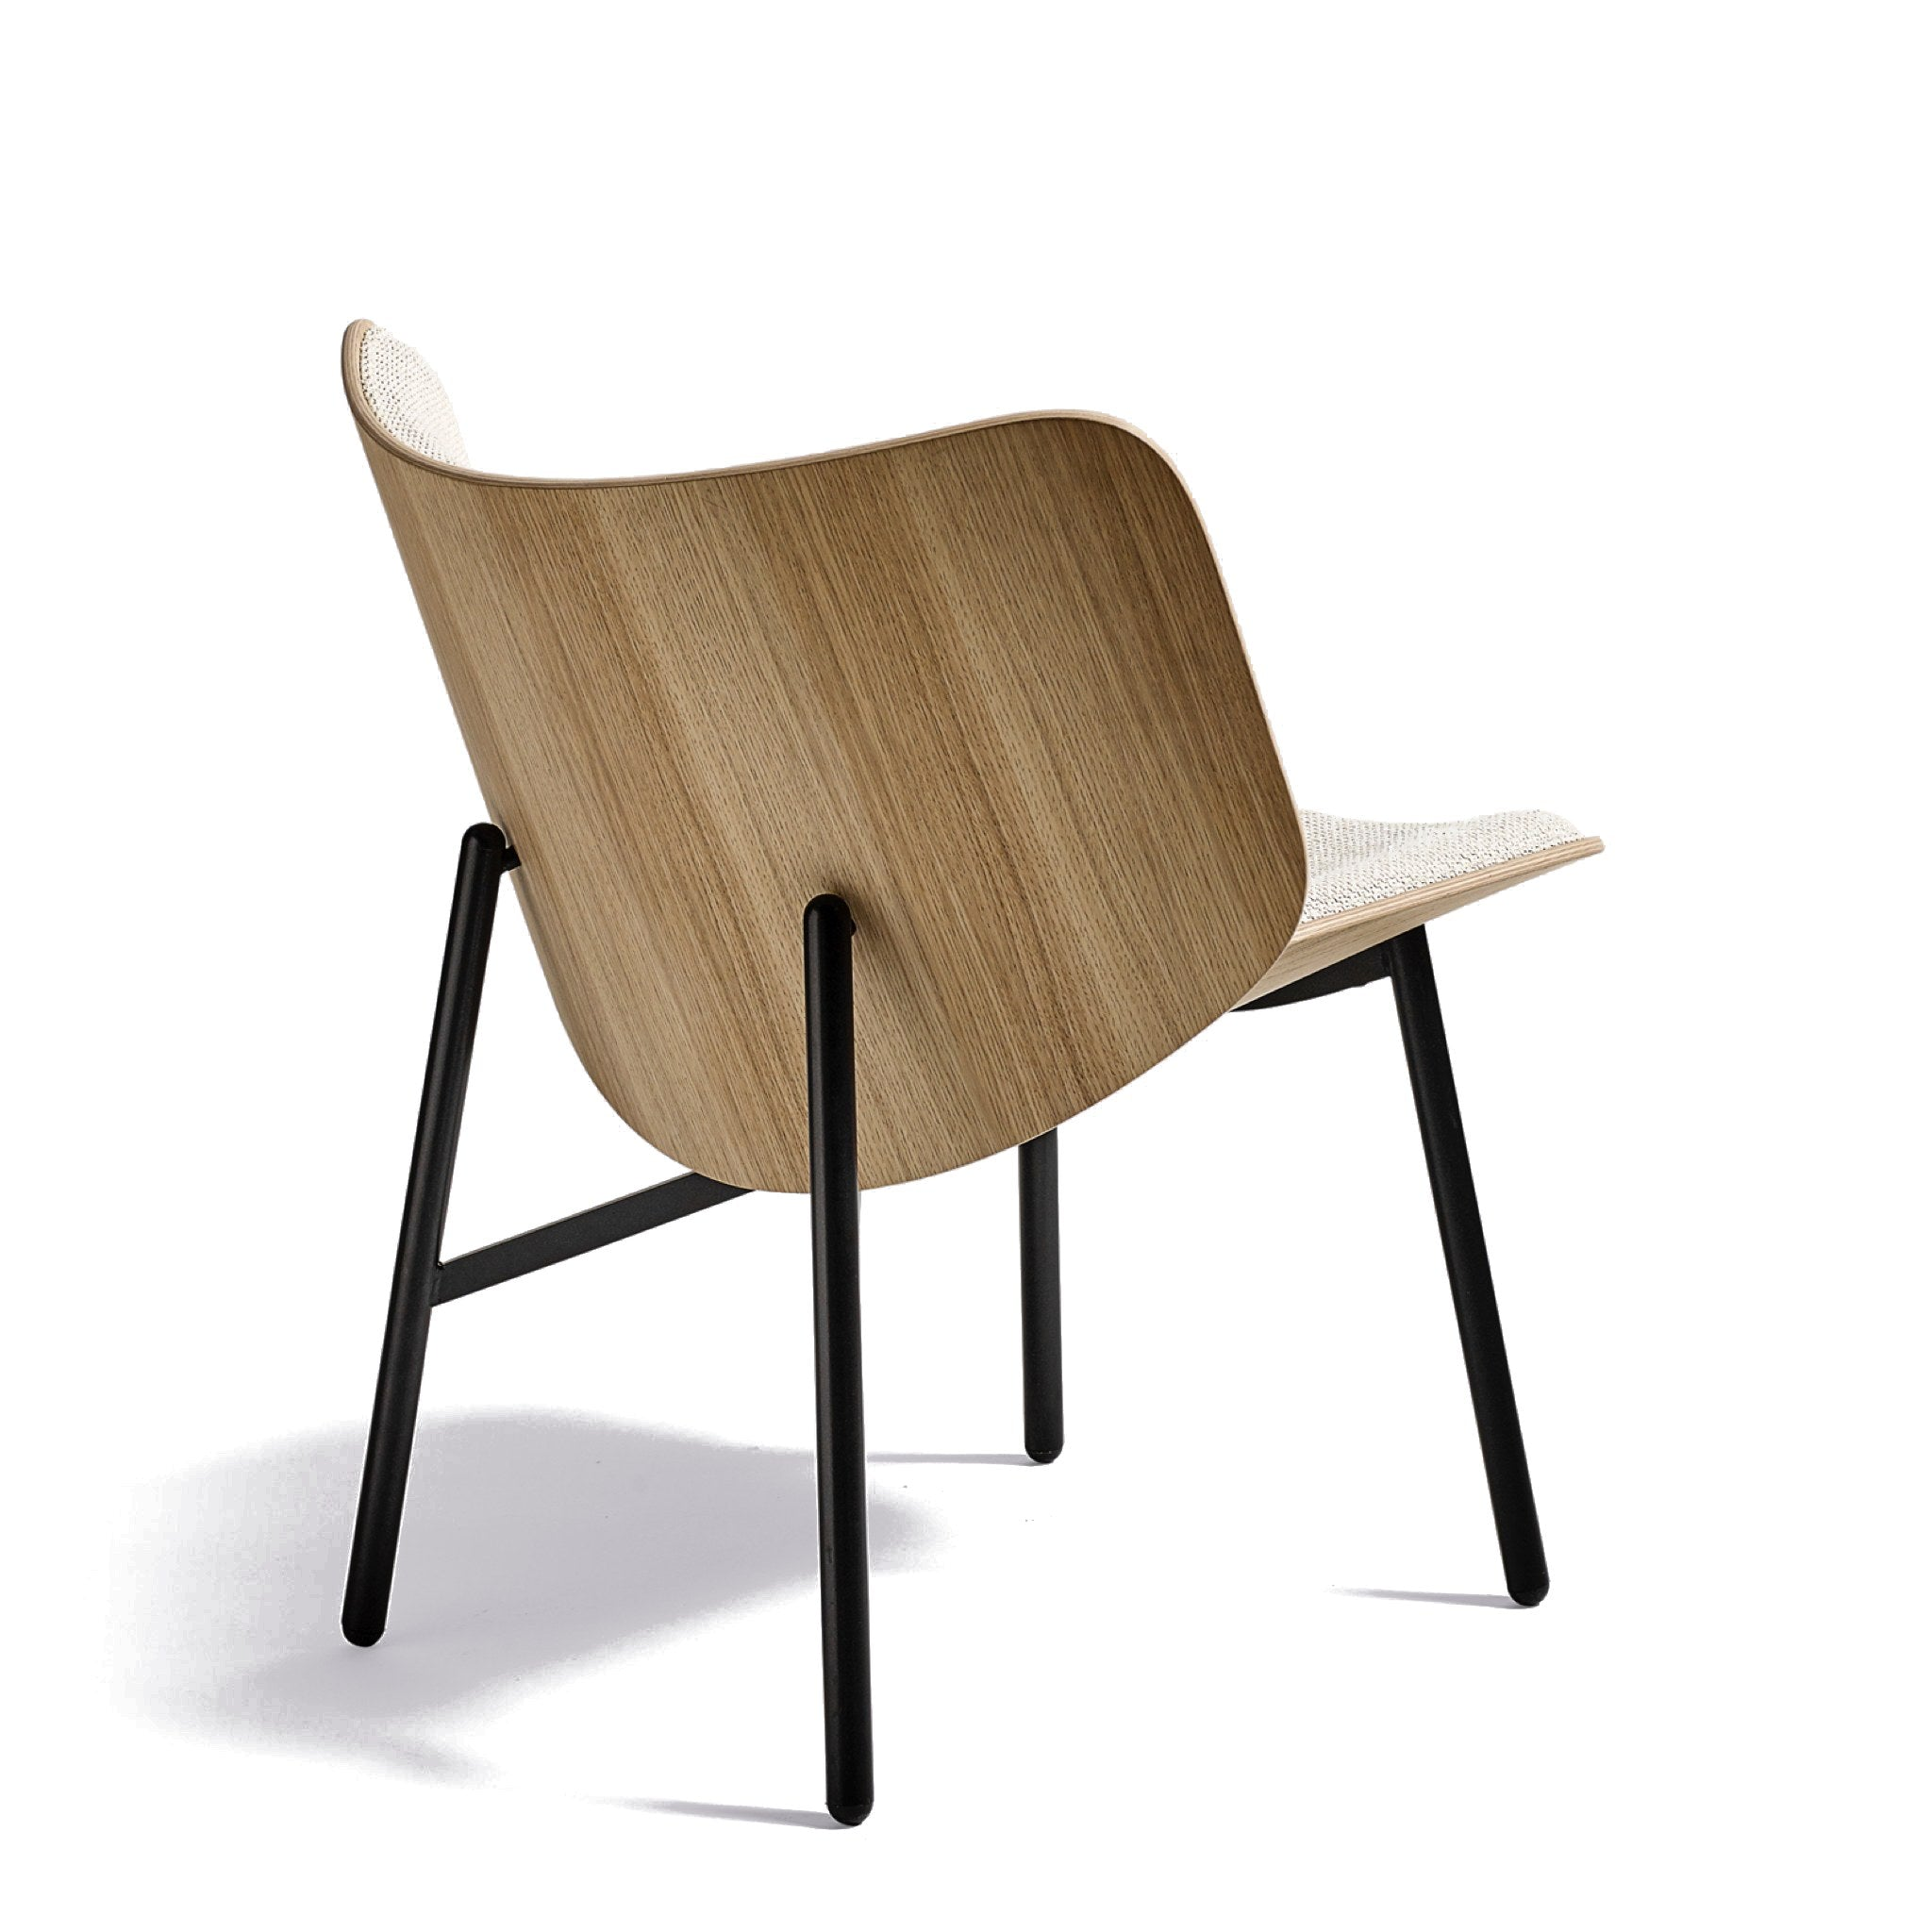 Hay Lounge Stoel.Dapper Lounge Chair By Hay Haus